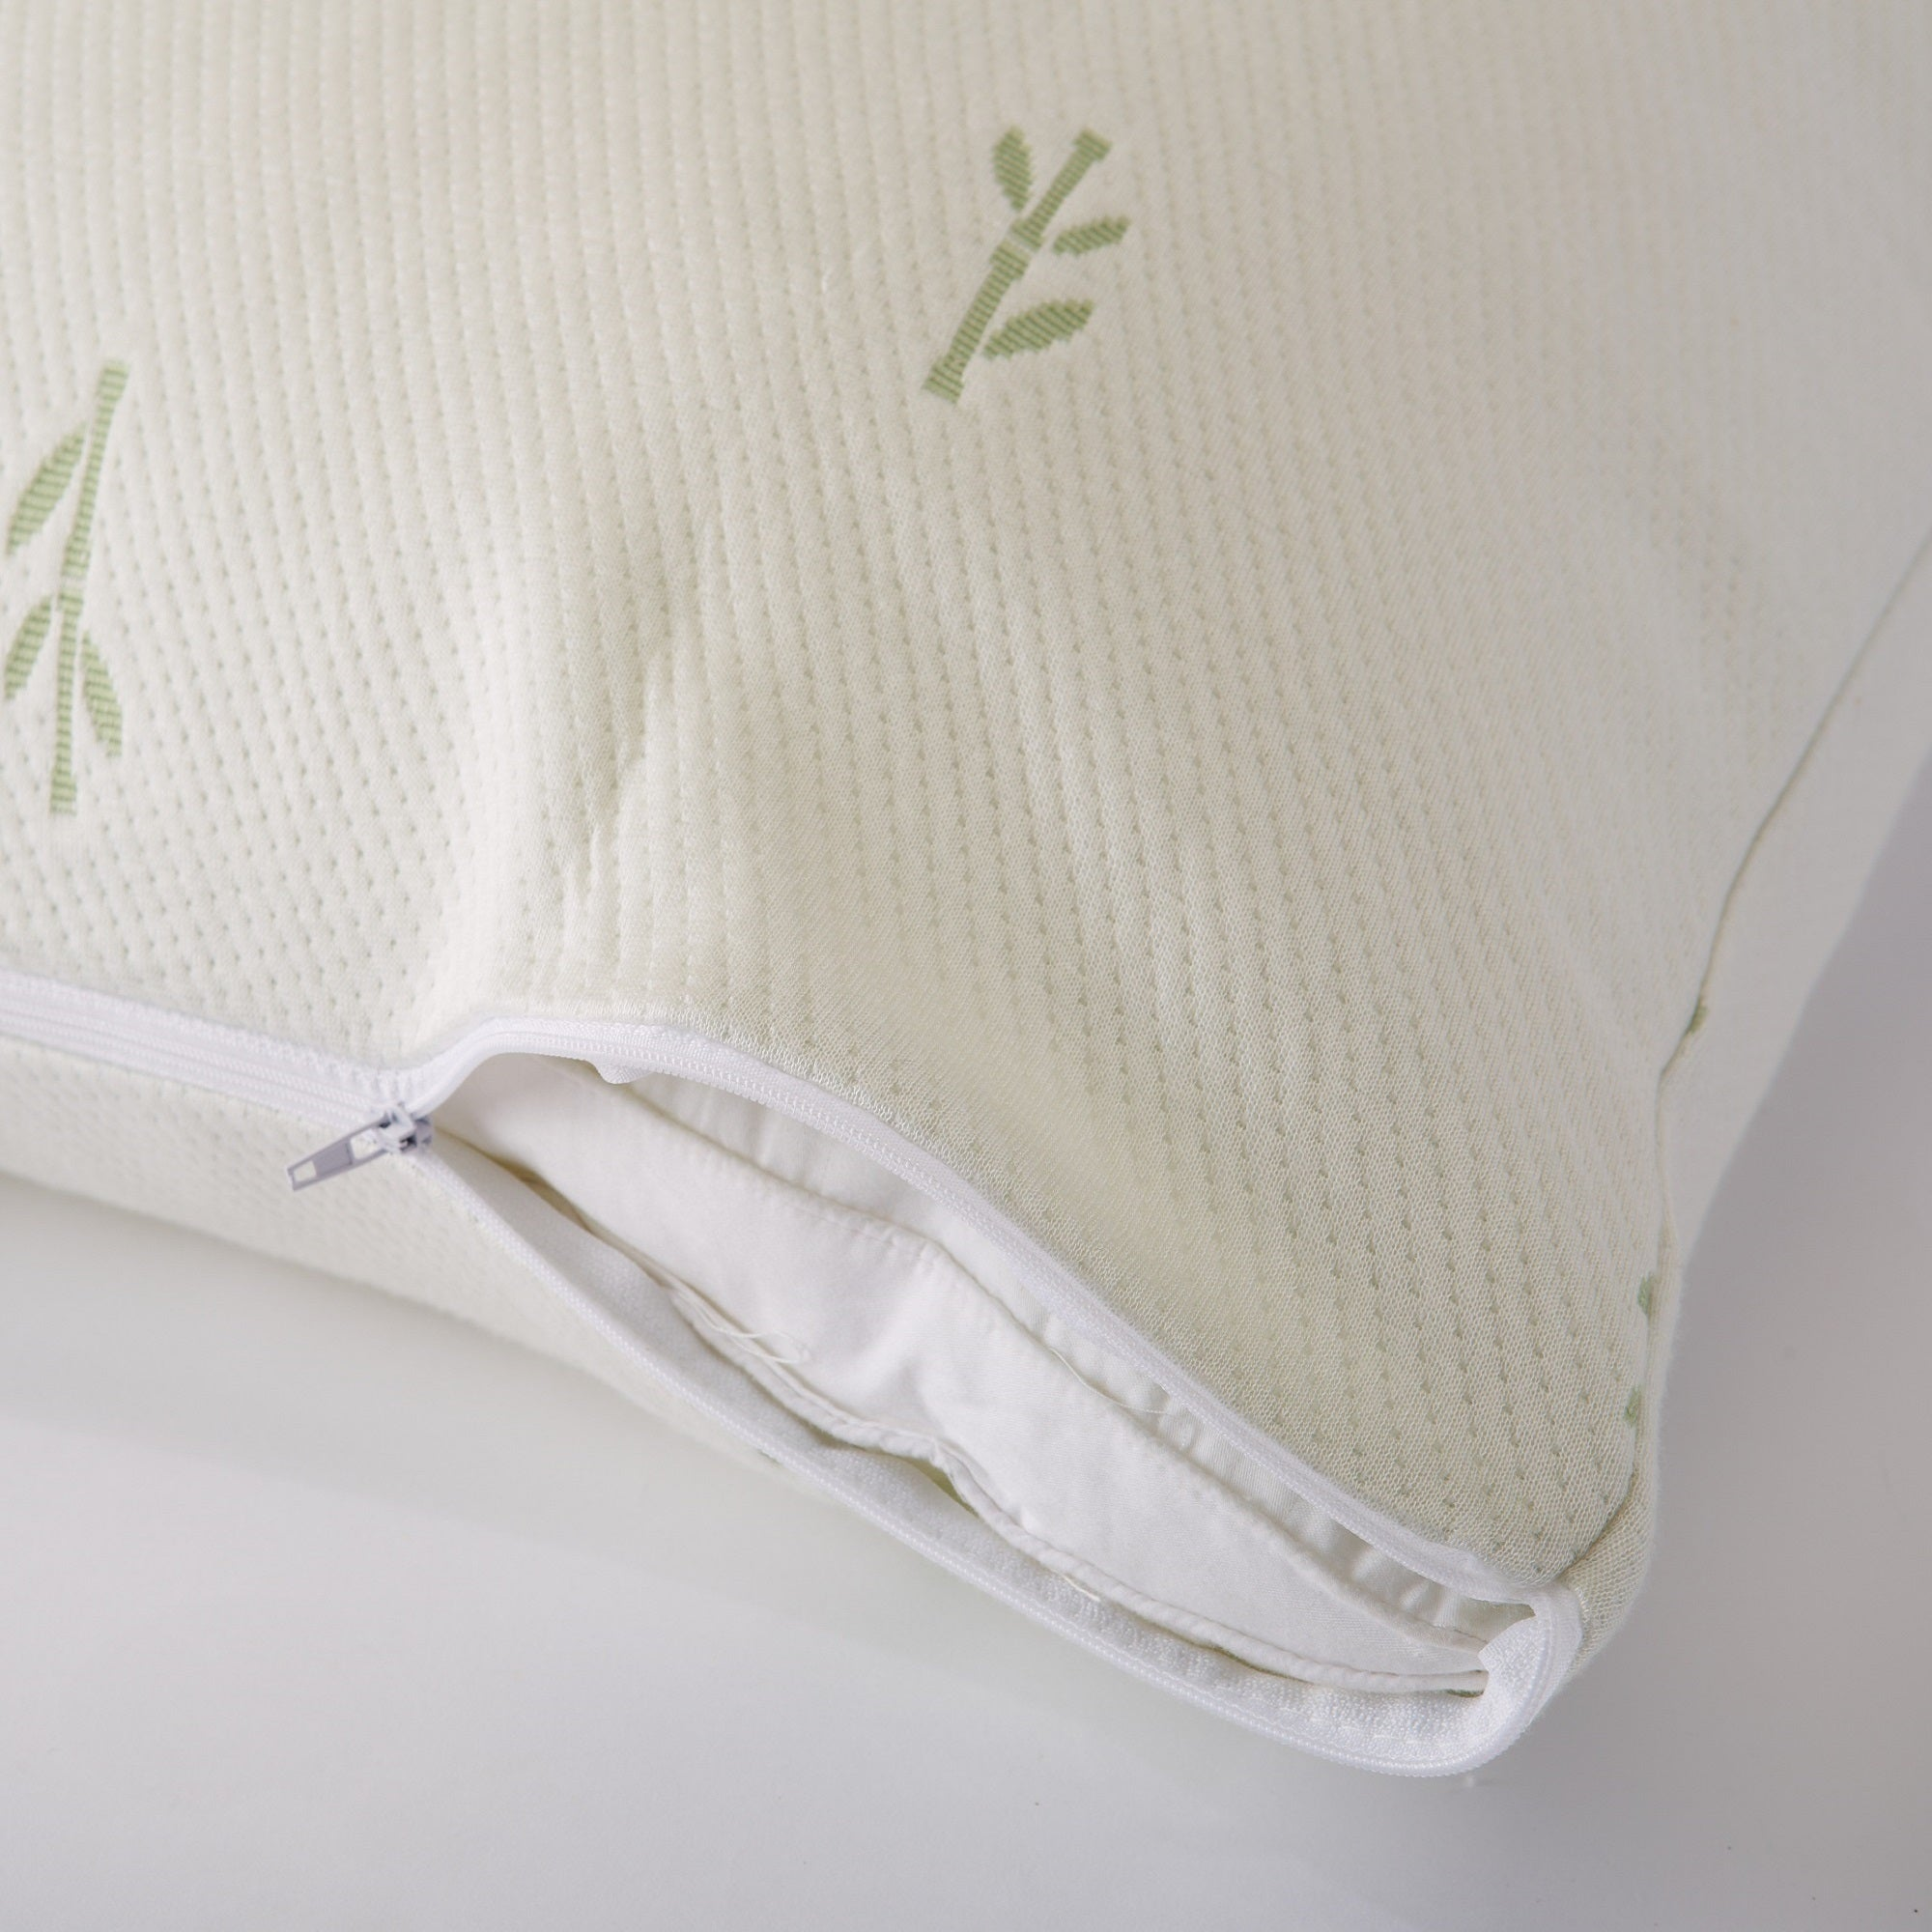 posturepedic touch reviews soft sealy mattresses product protector copy pillow bamboo